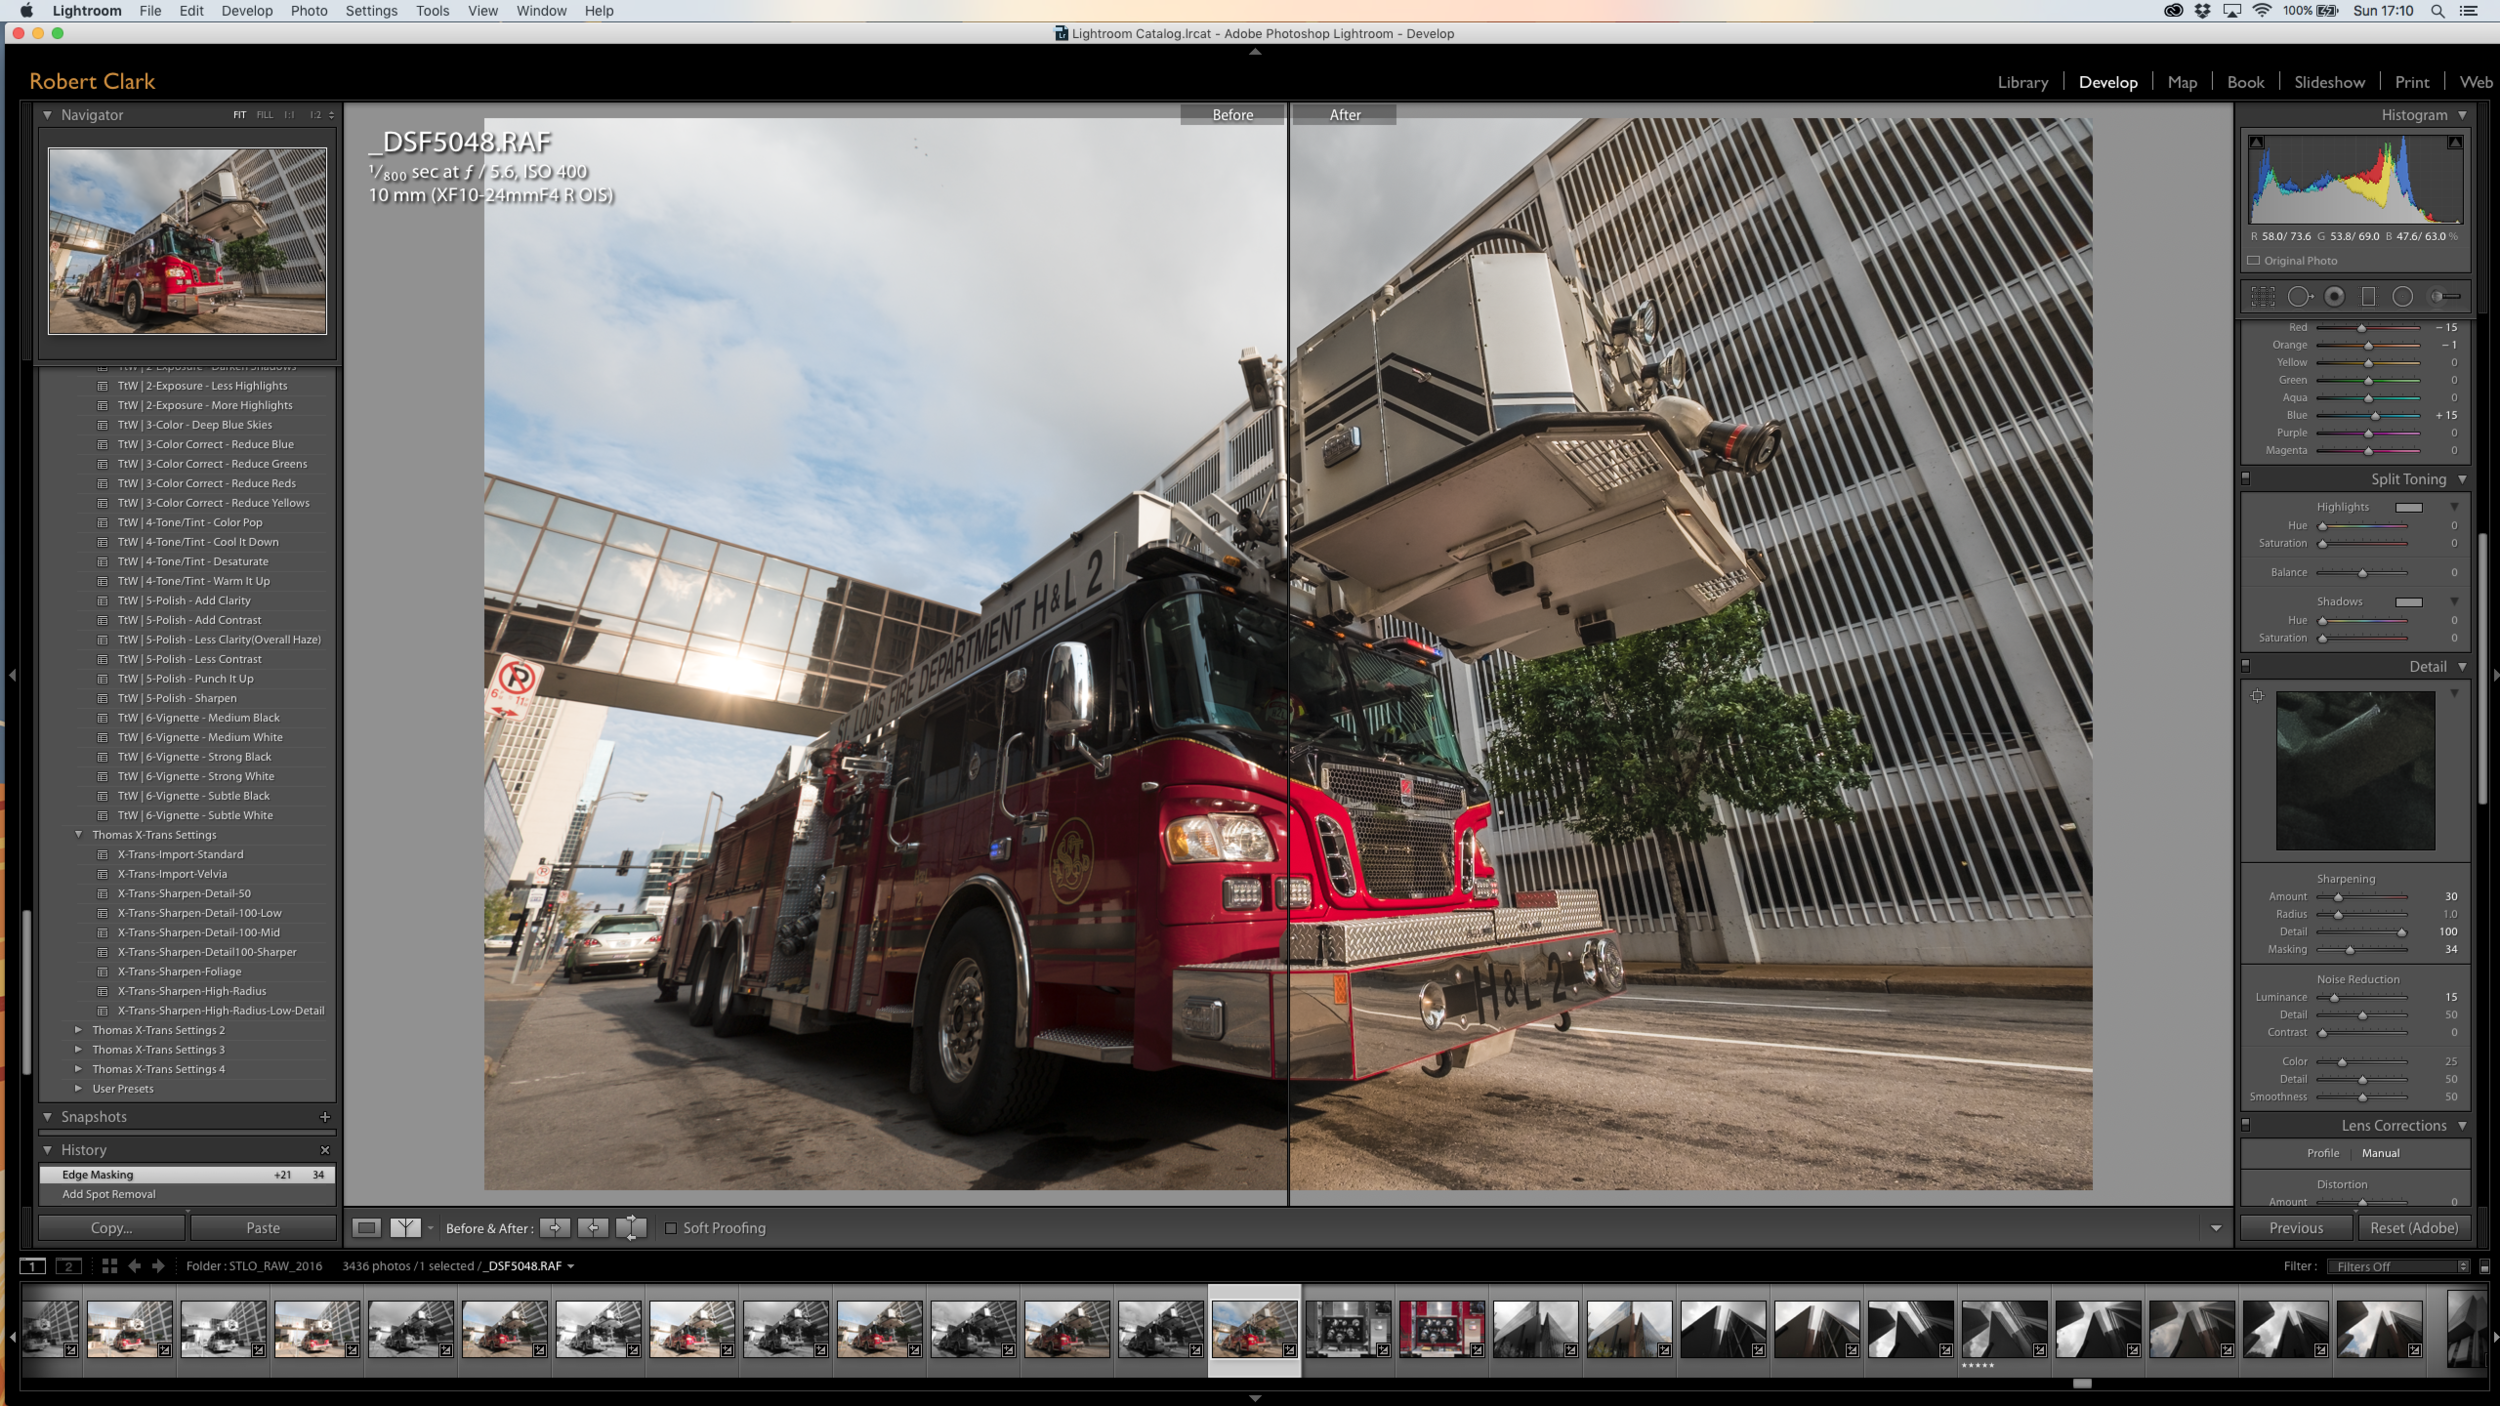 Split Screen: Before and After - Hook and Ladder